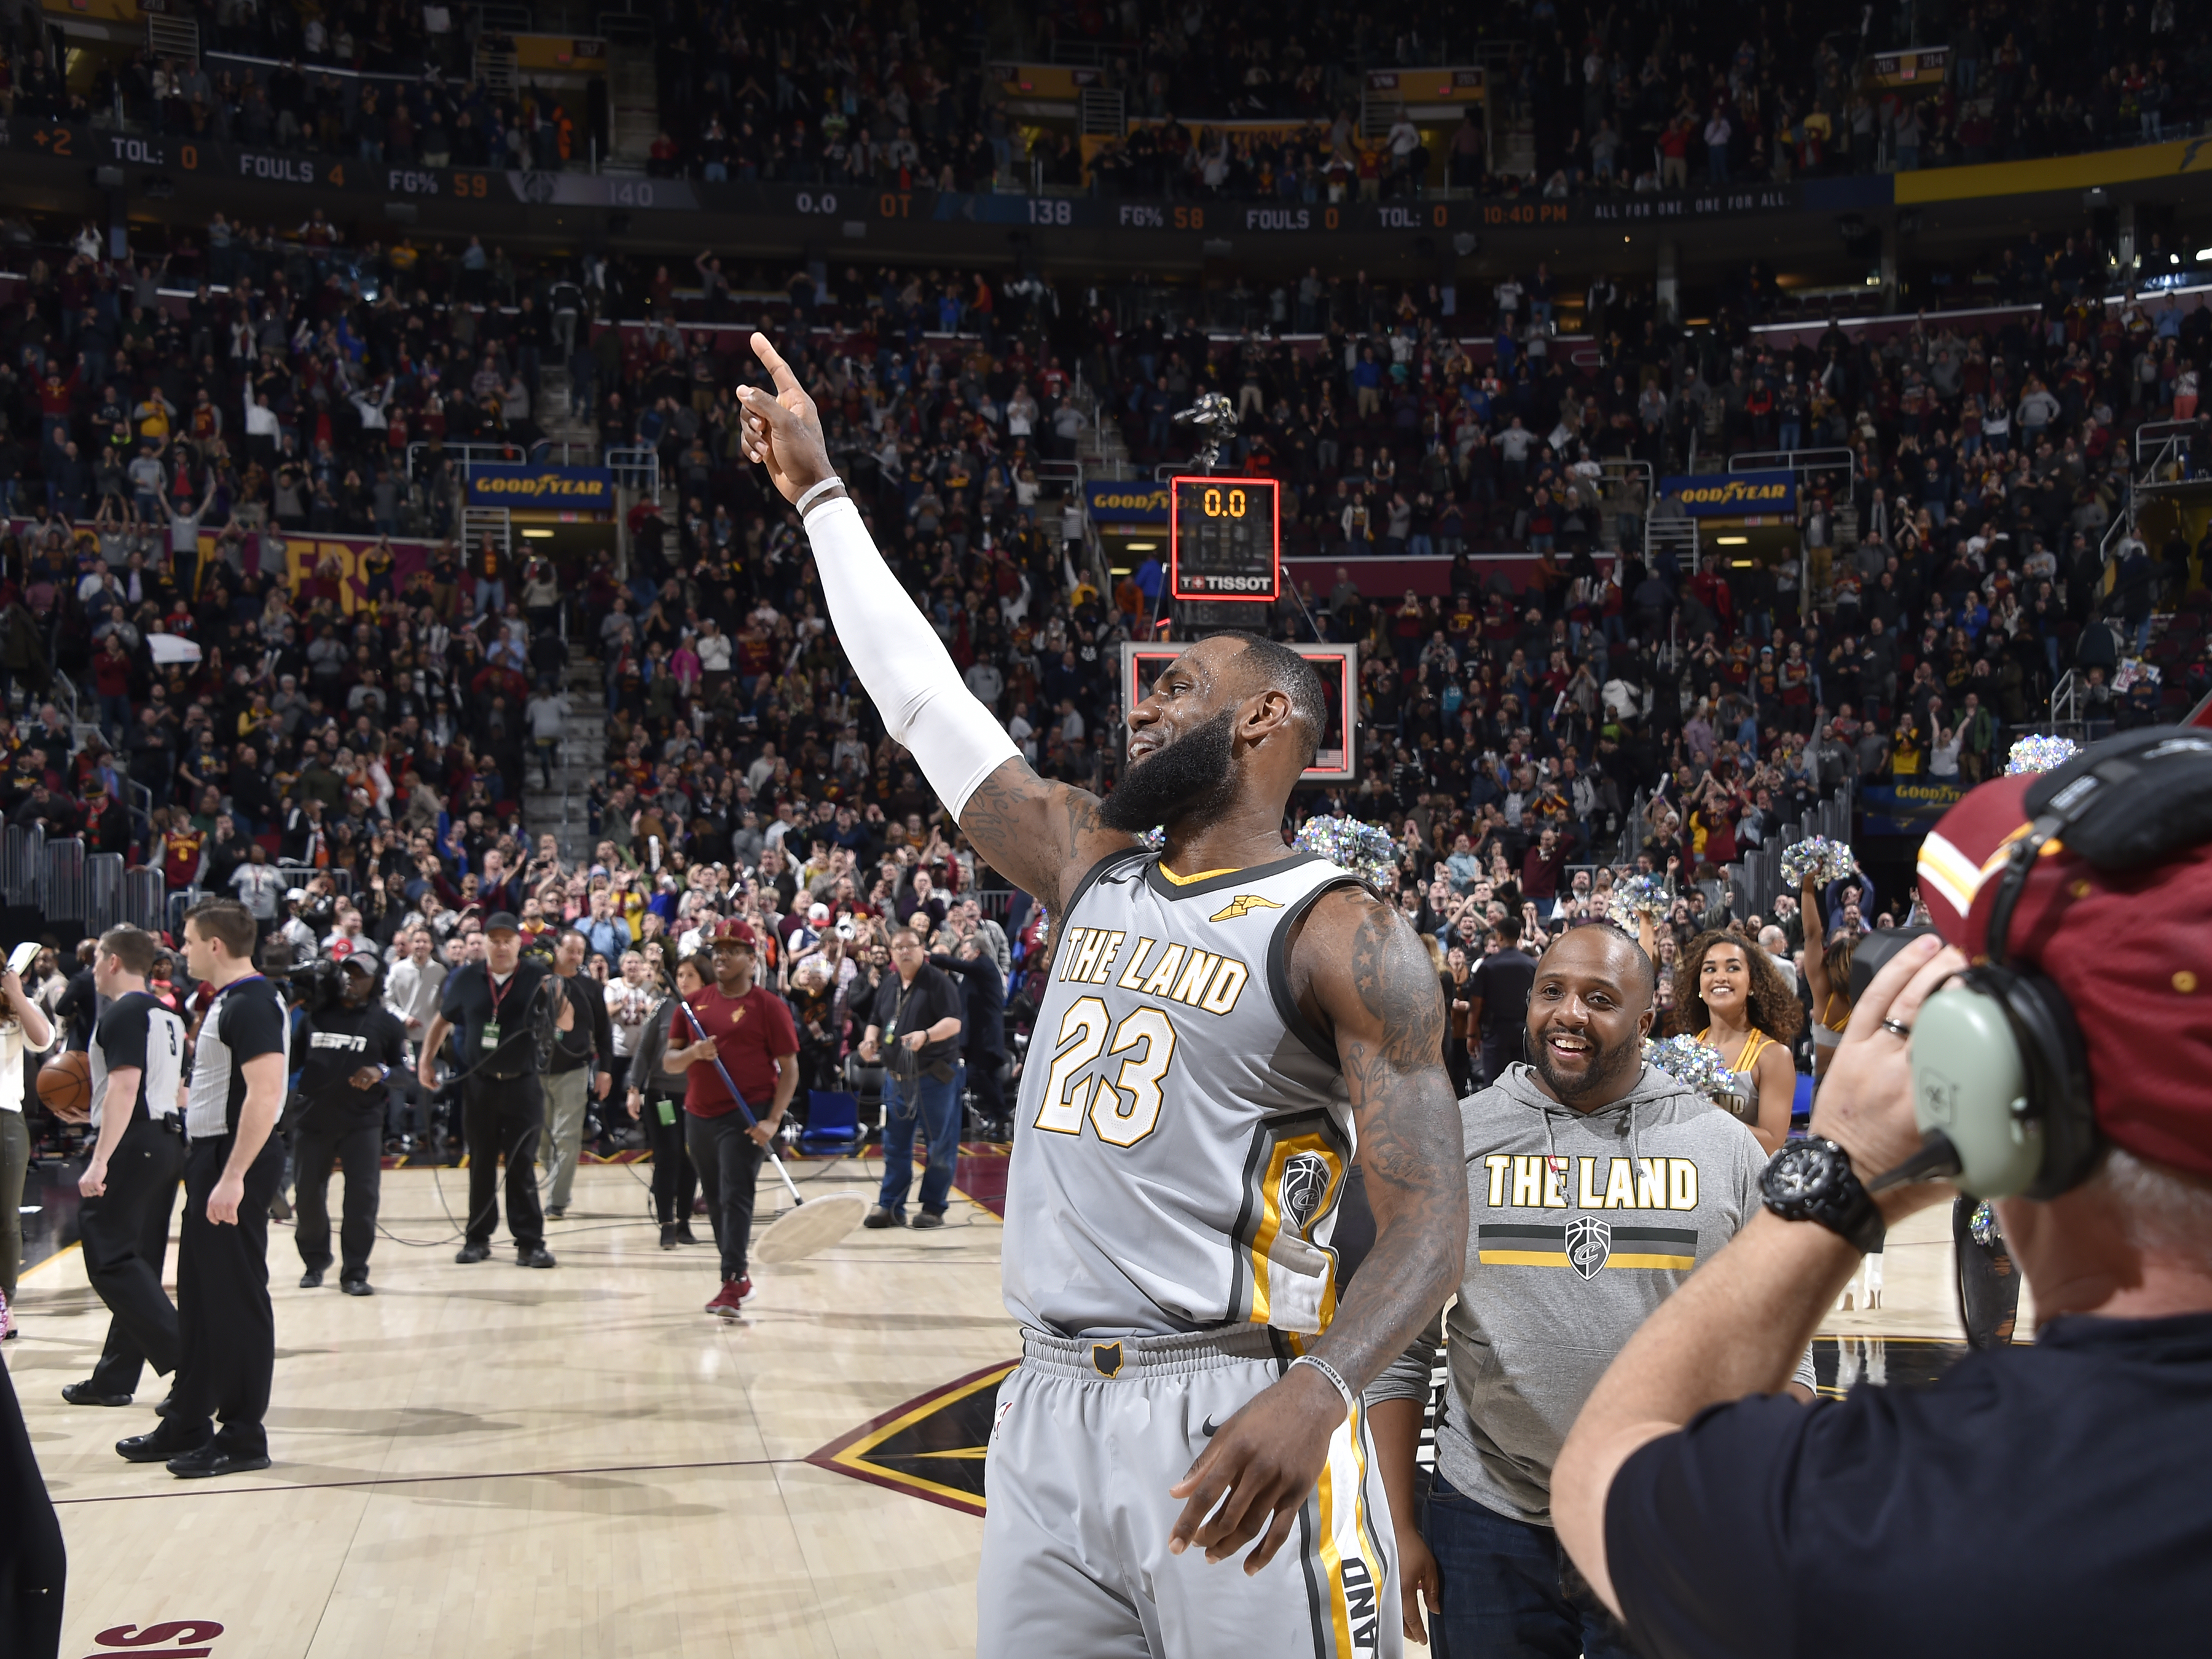 2017-18 Clutch Shot of the Year - LeBron James